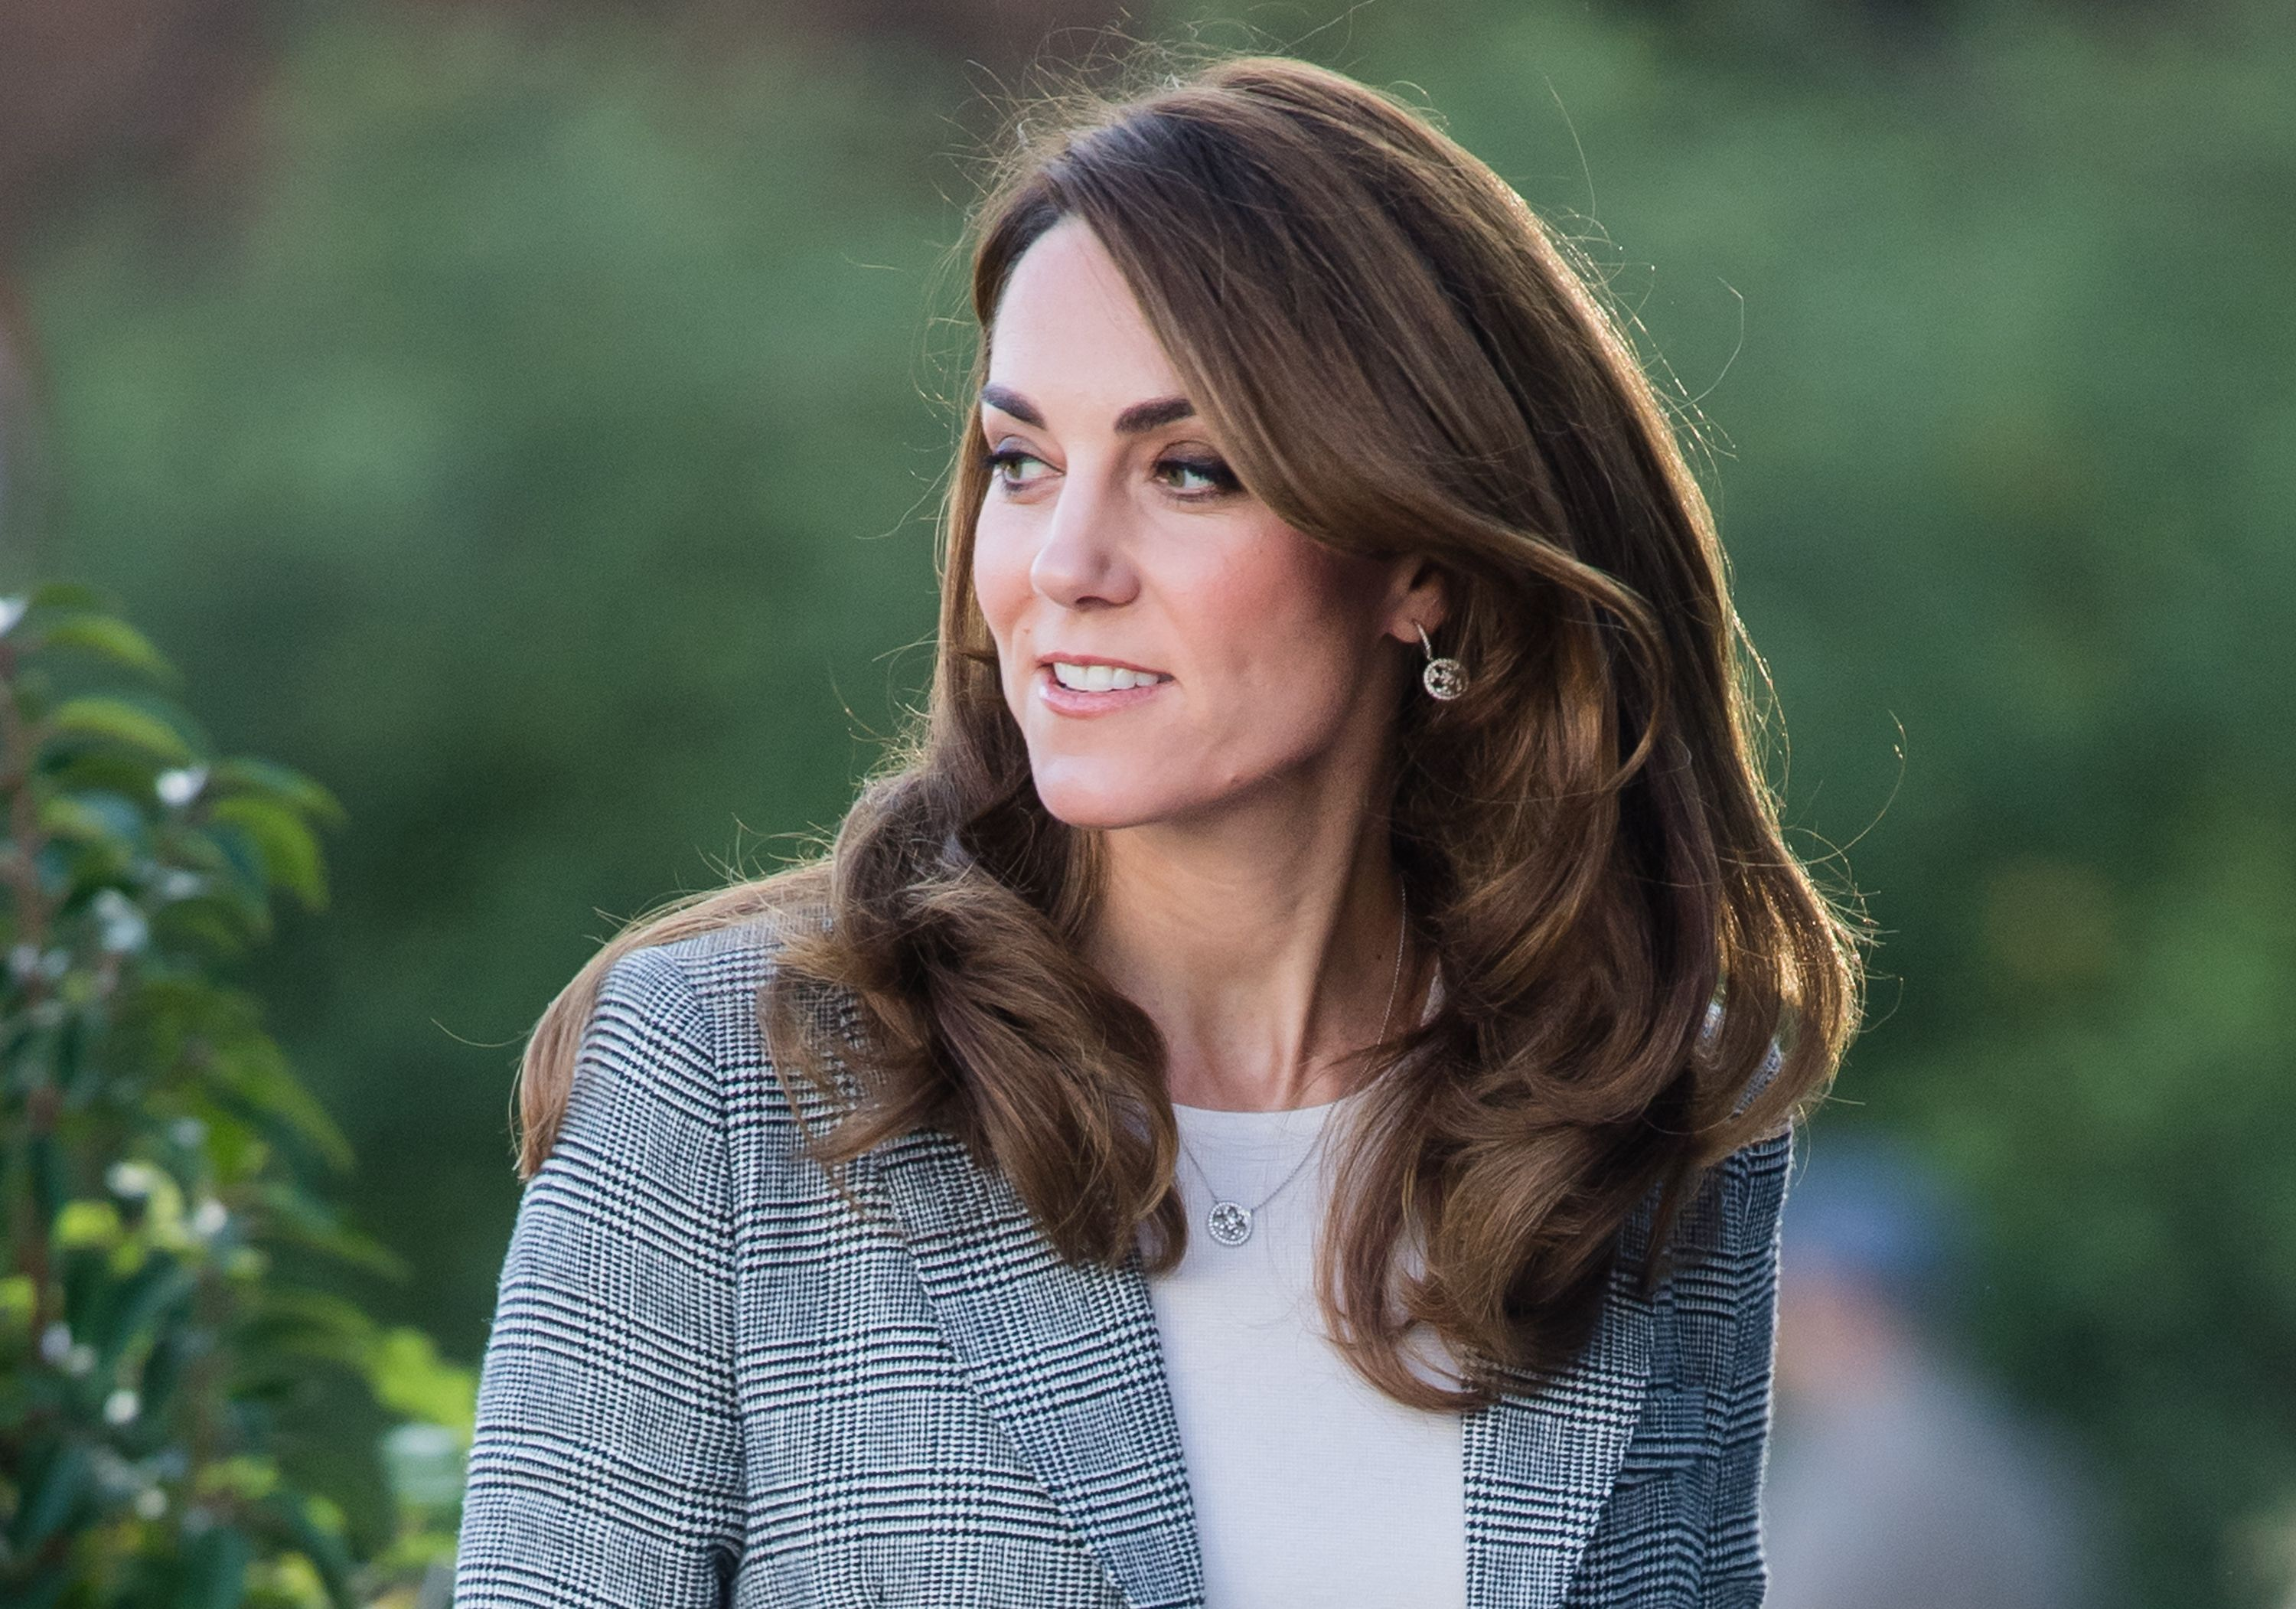 Kate Middleton steps out in stylish burgundy and check look